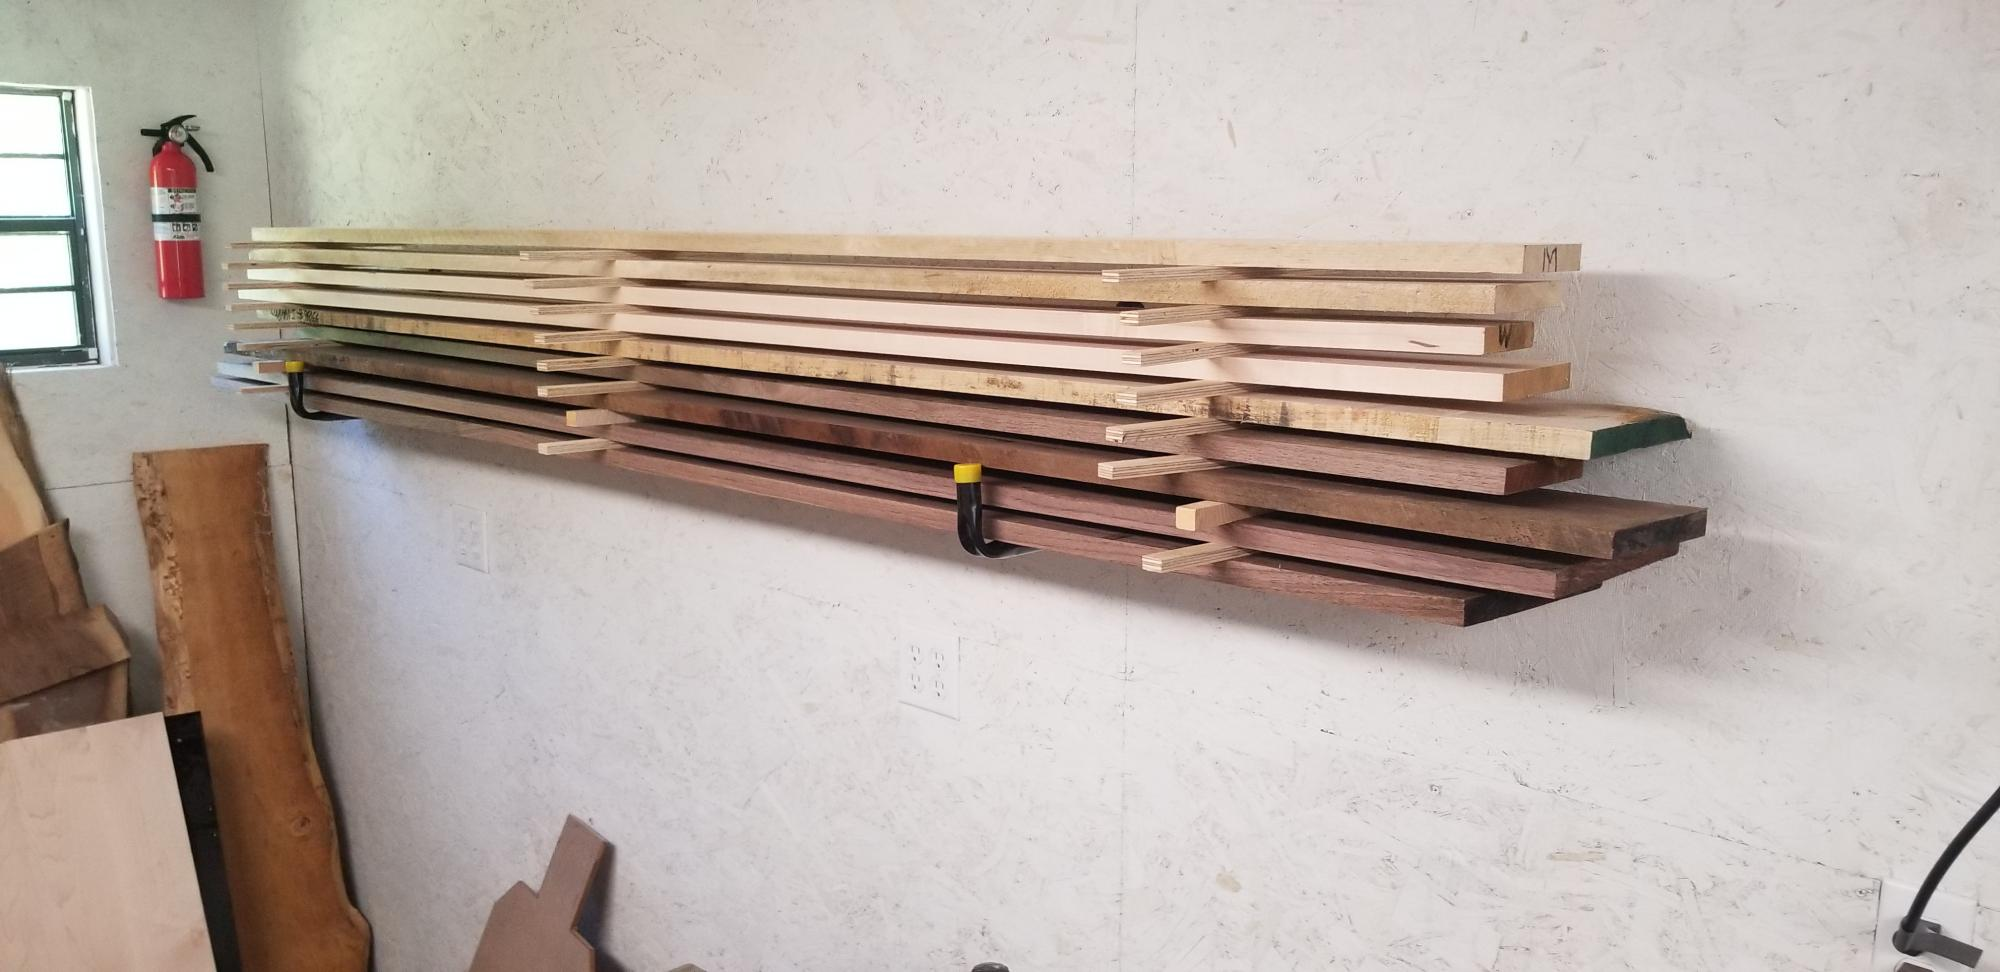 Found a local supplier for wood-20190611_153406_1560391756790.jpg